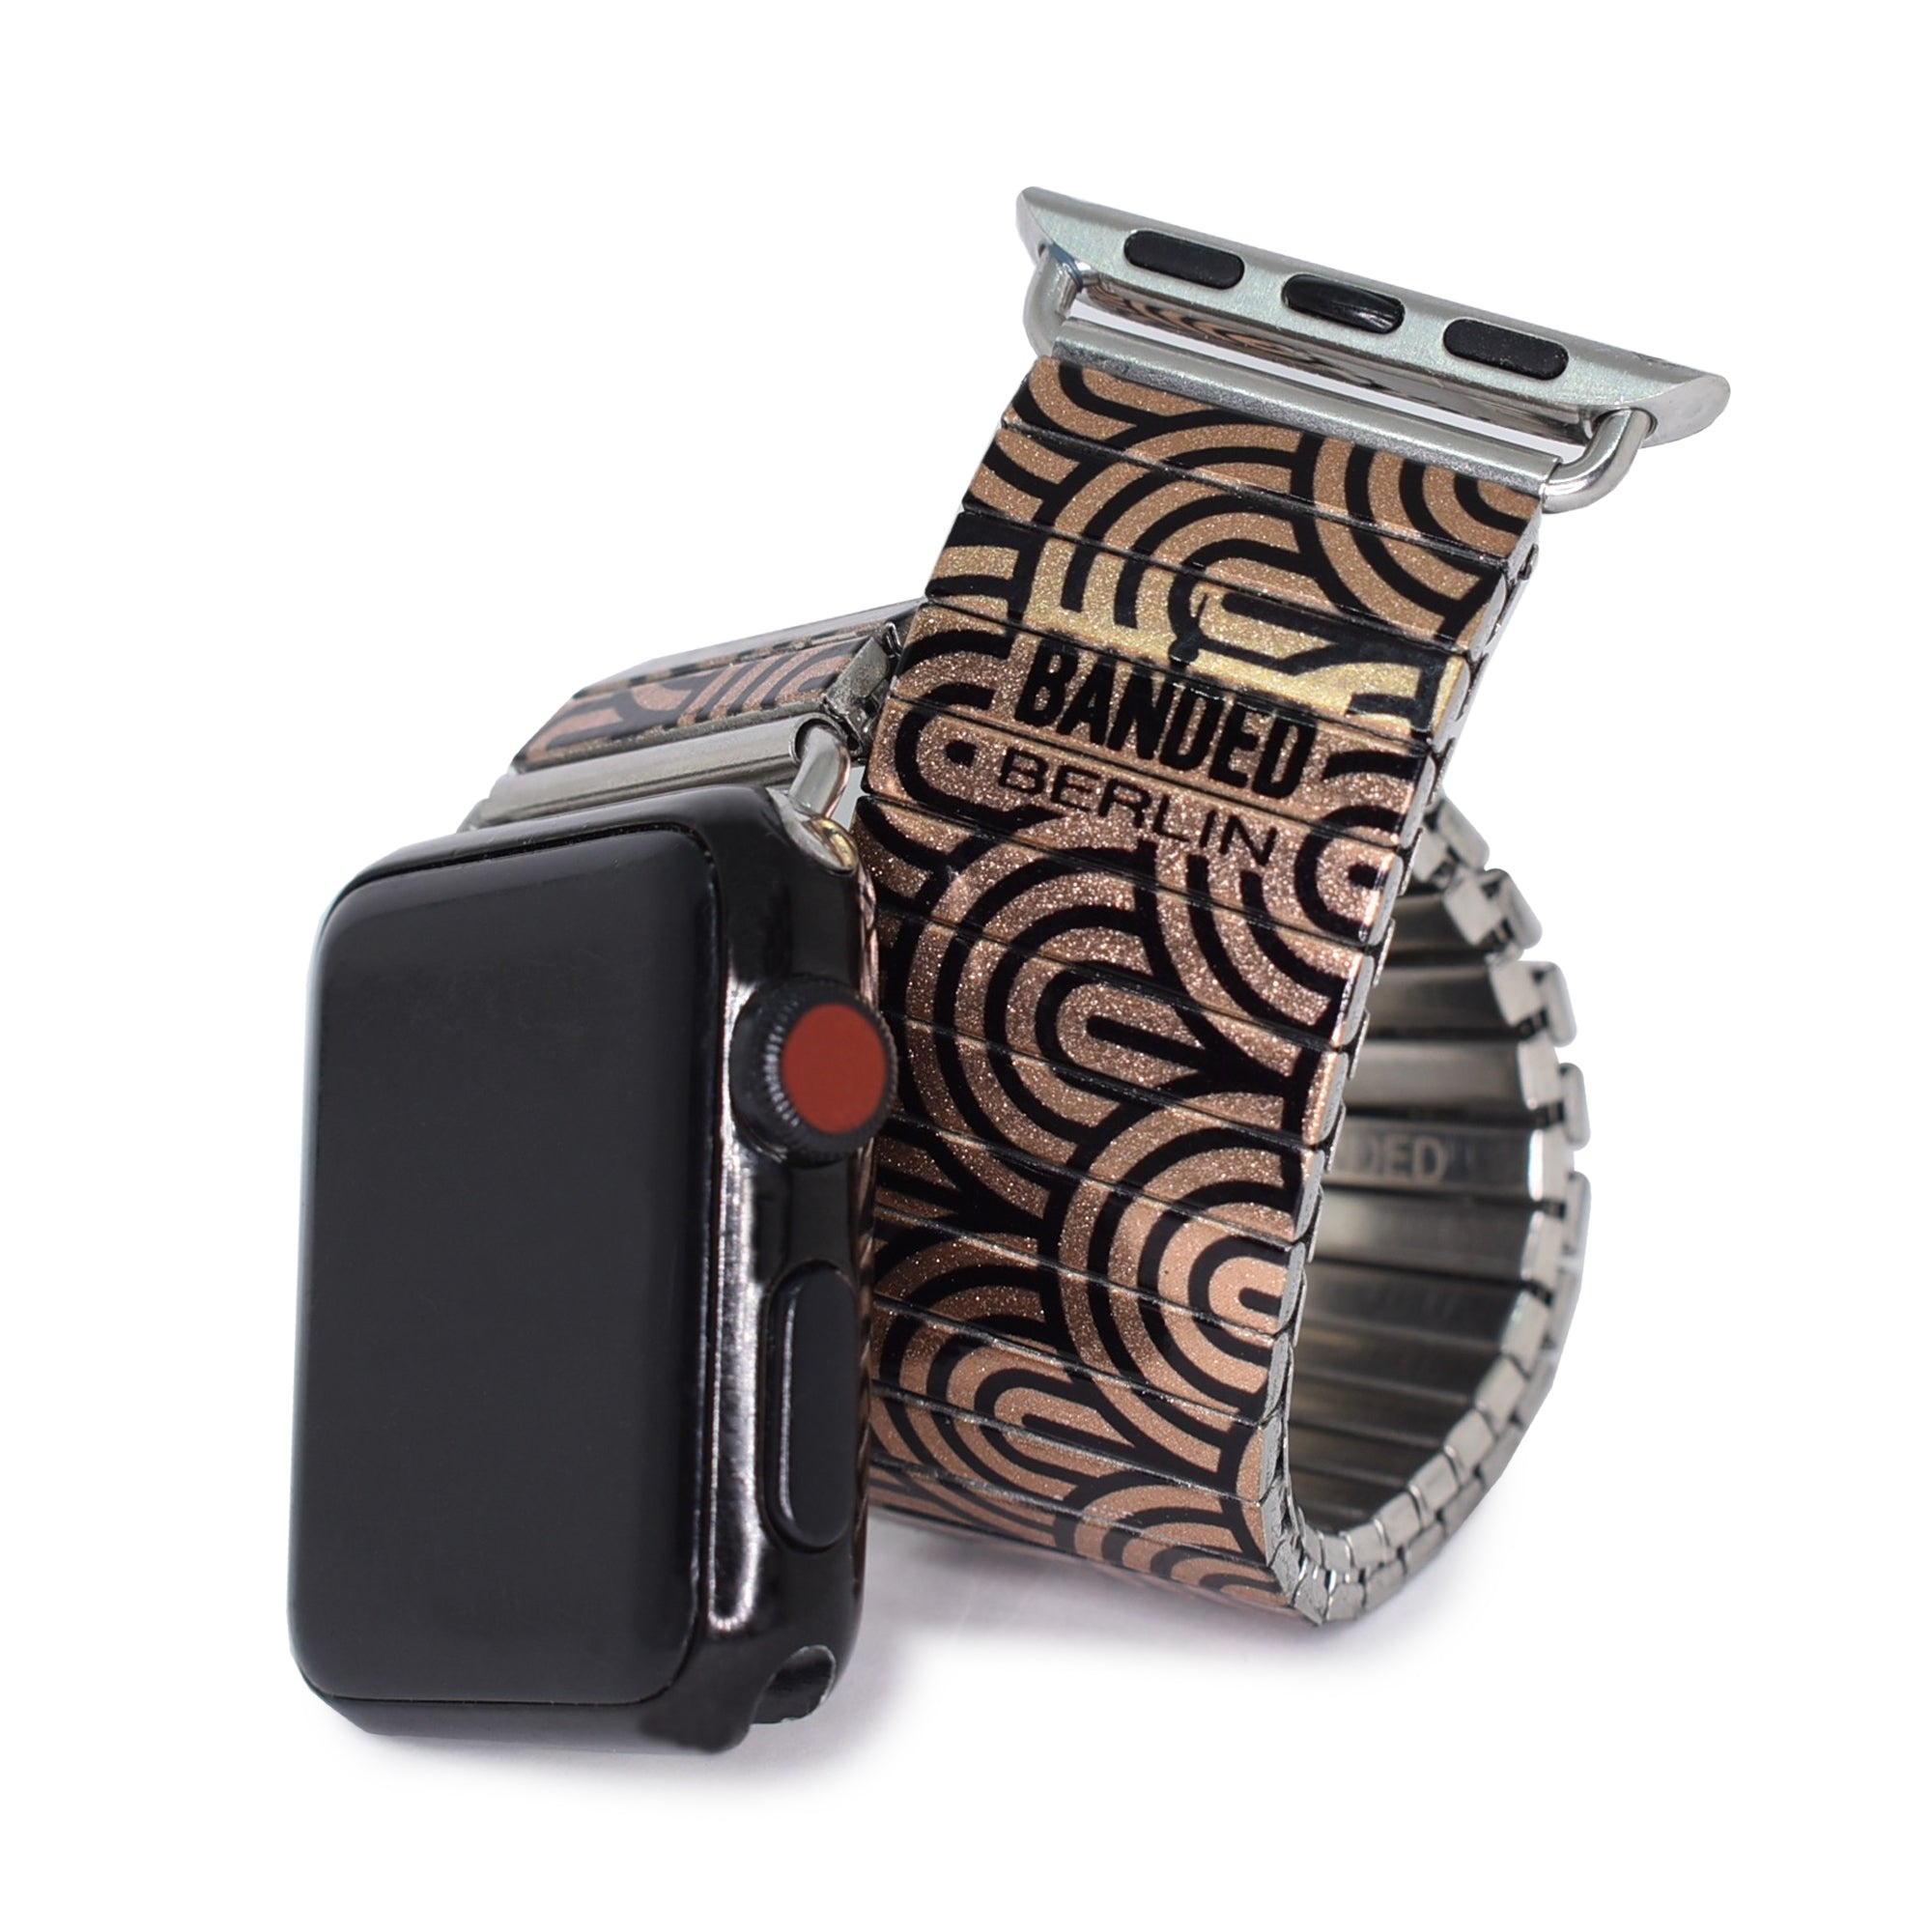 Copper MonoChrome Rainbow Banded Apple watch band